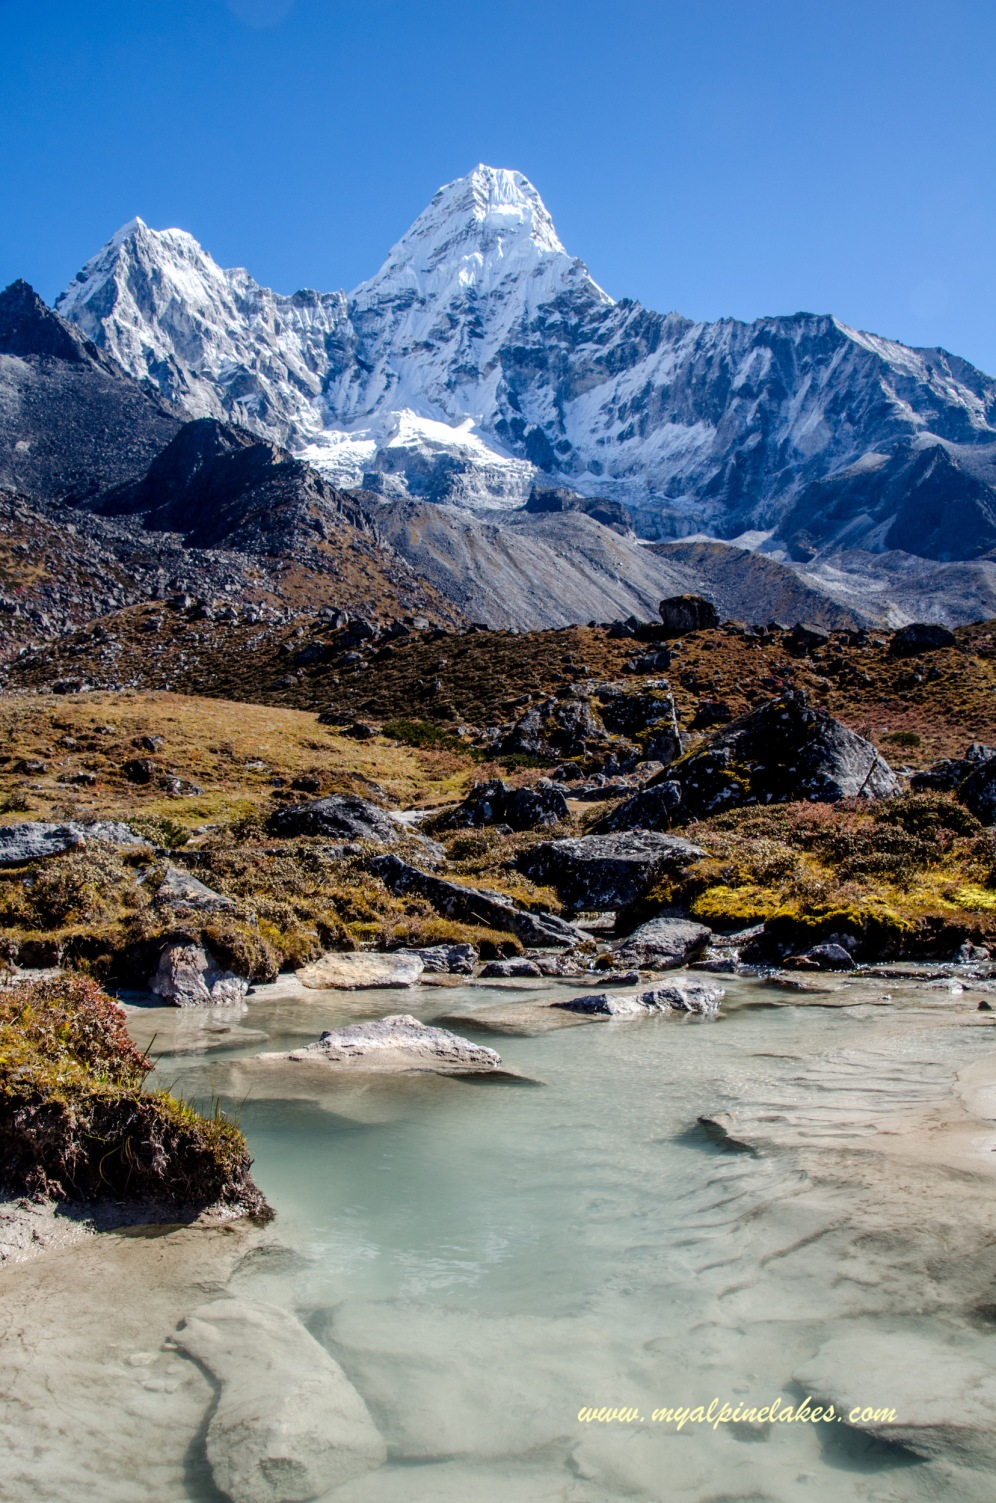 turquoise glacial melt water in front of Ama Dablam